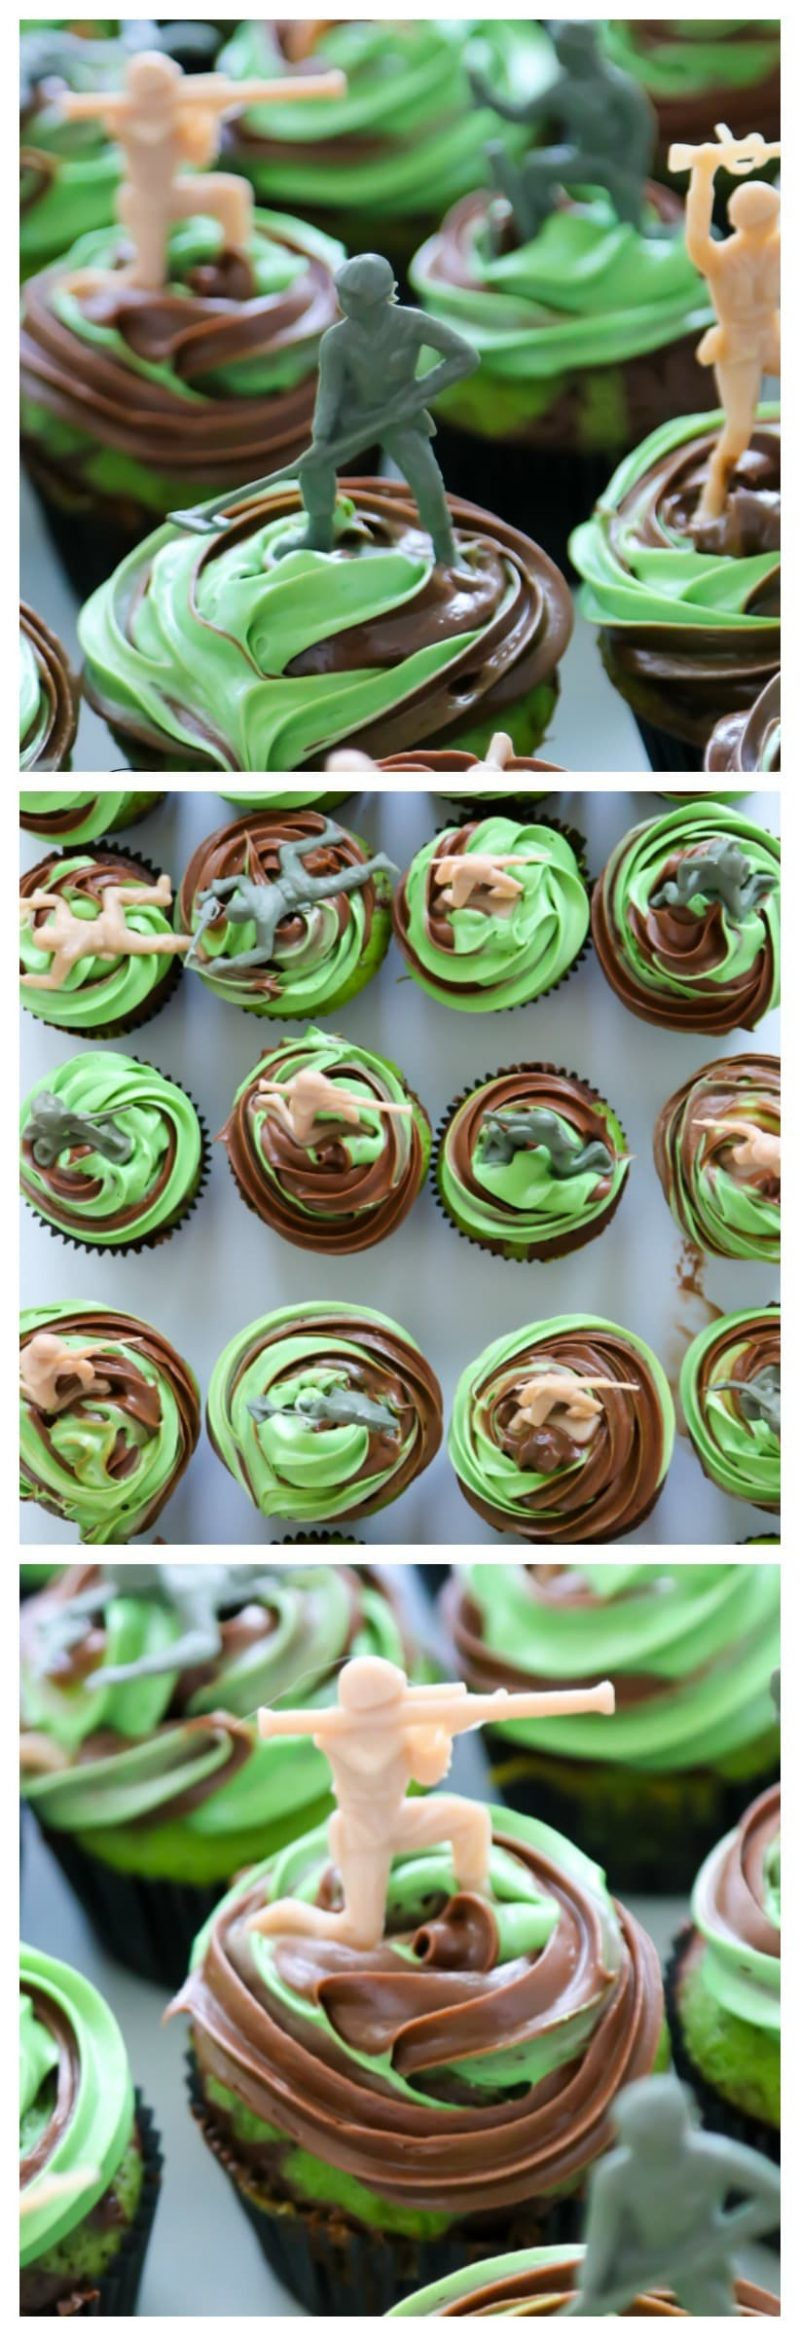 Call of Duty Cupcakes | Camouflage Cupcakes | Army Birthday Party